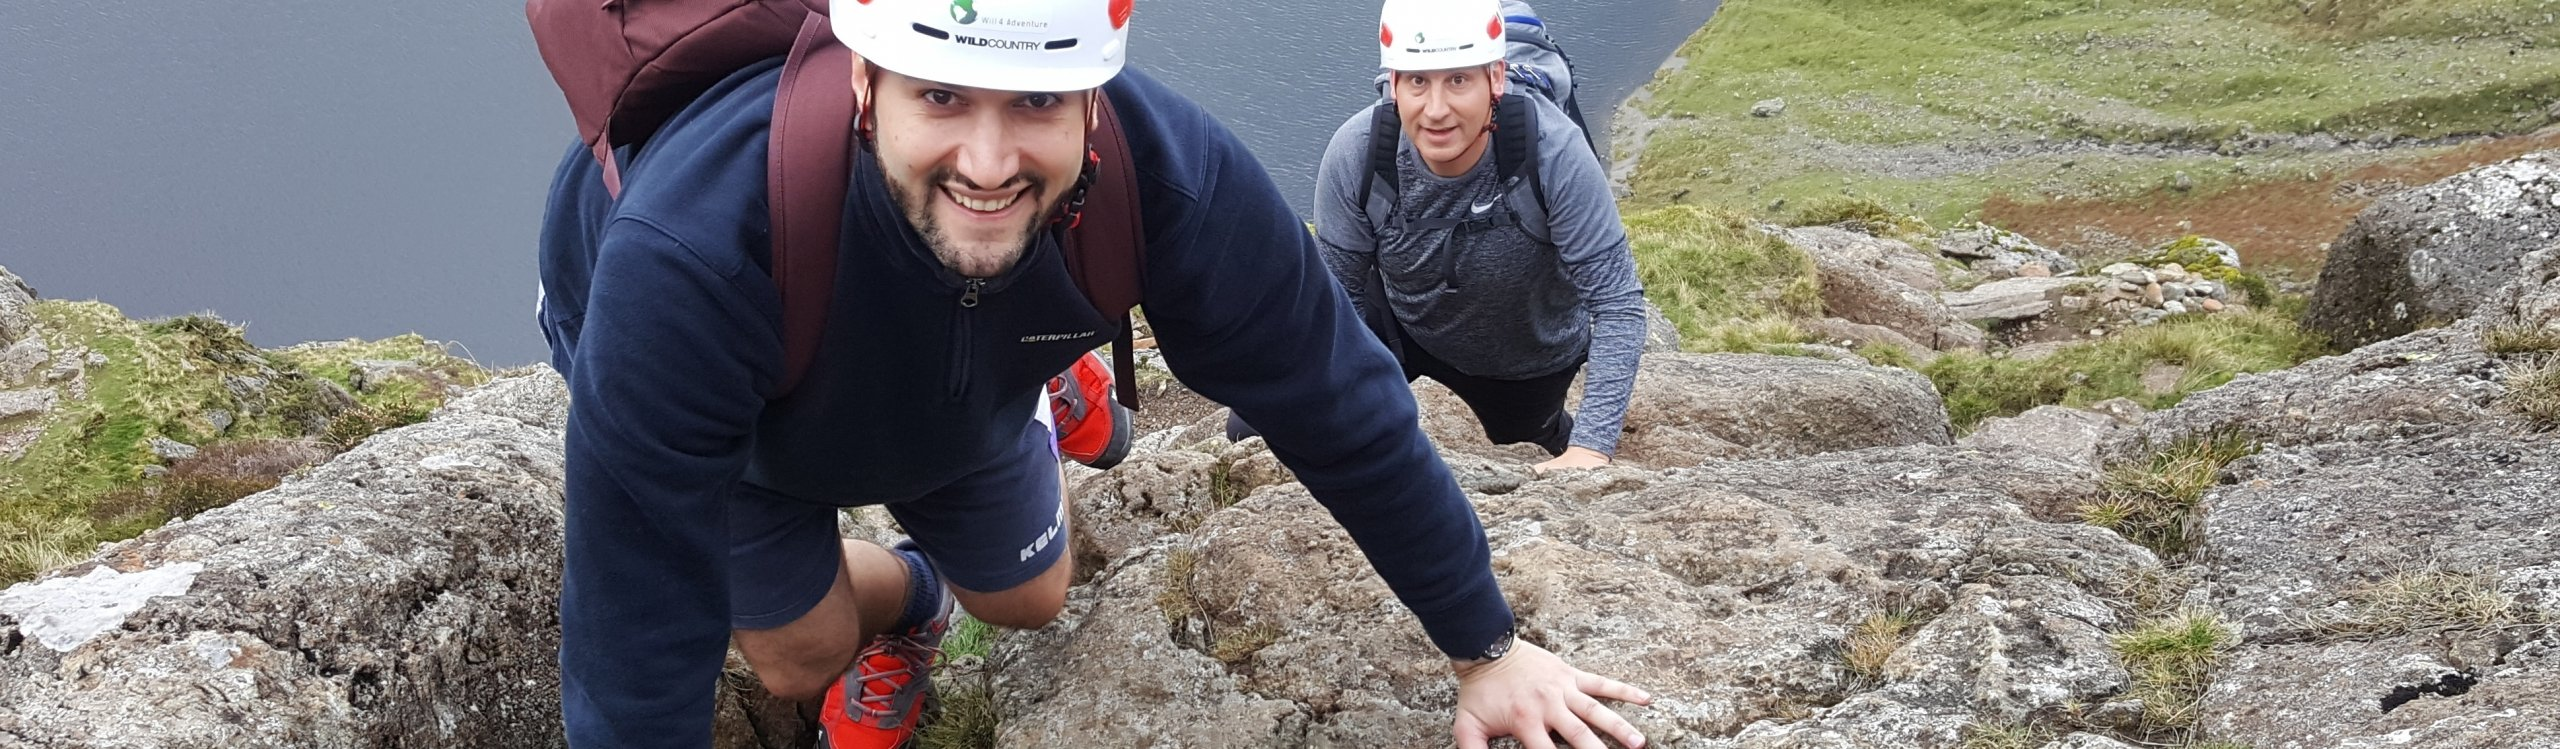 Scrambling courses and guided weekends